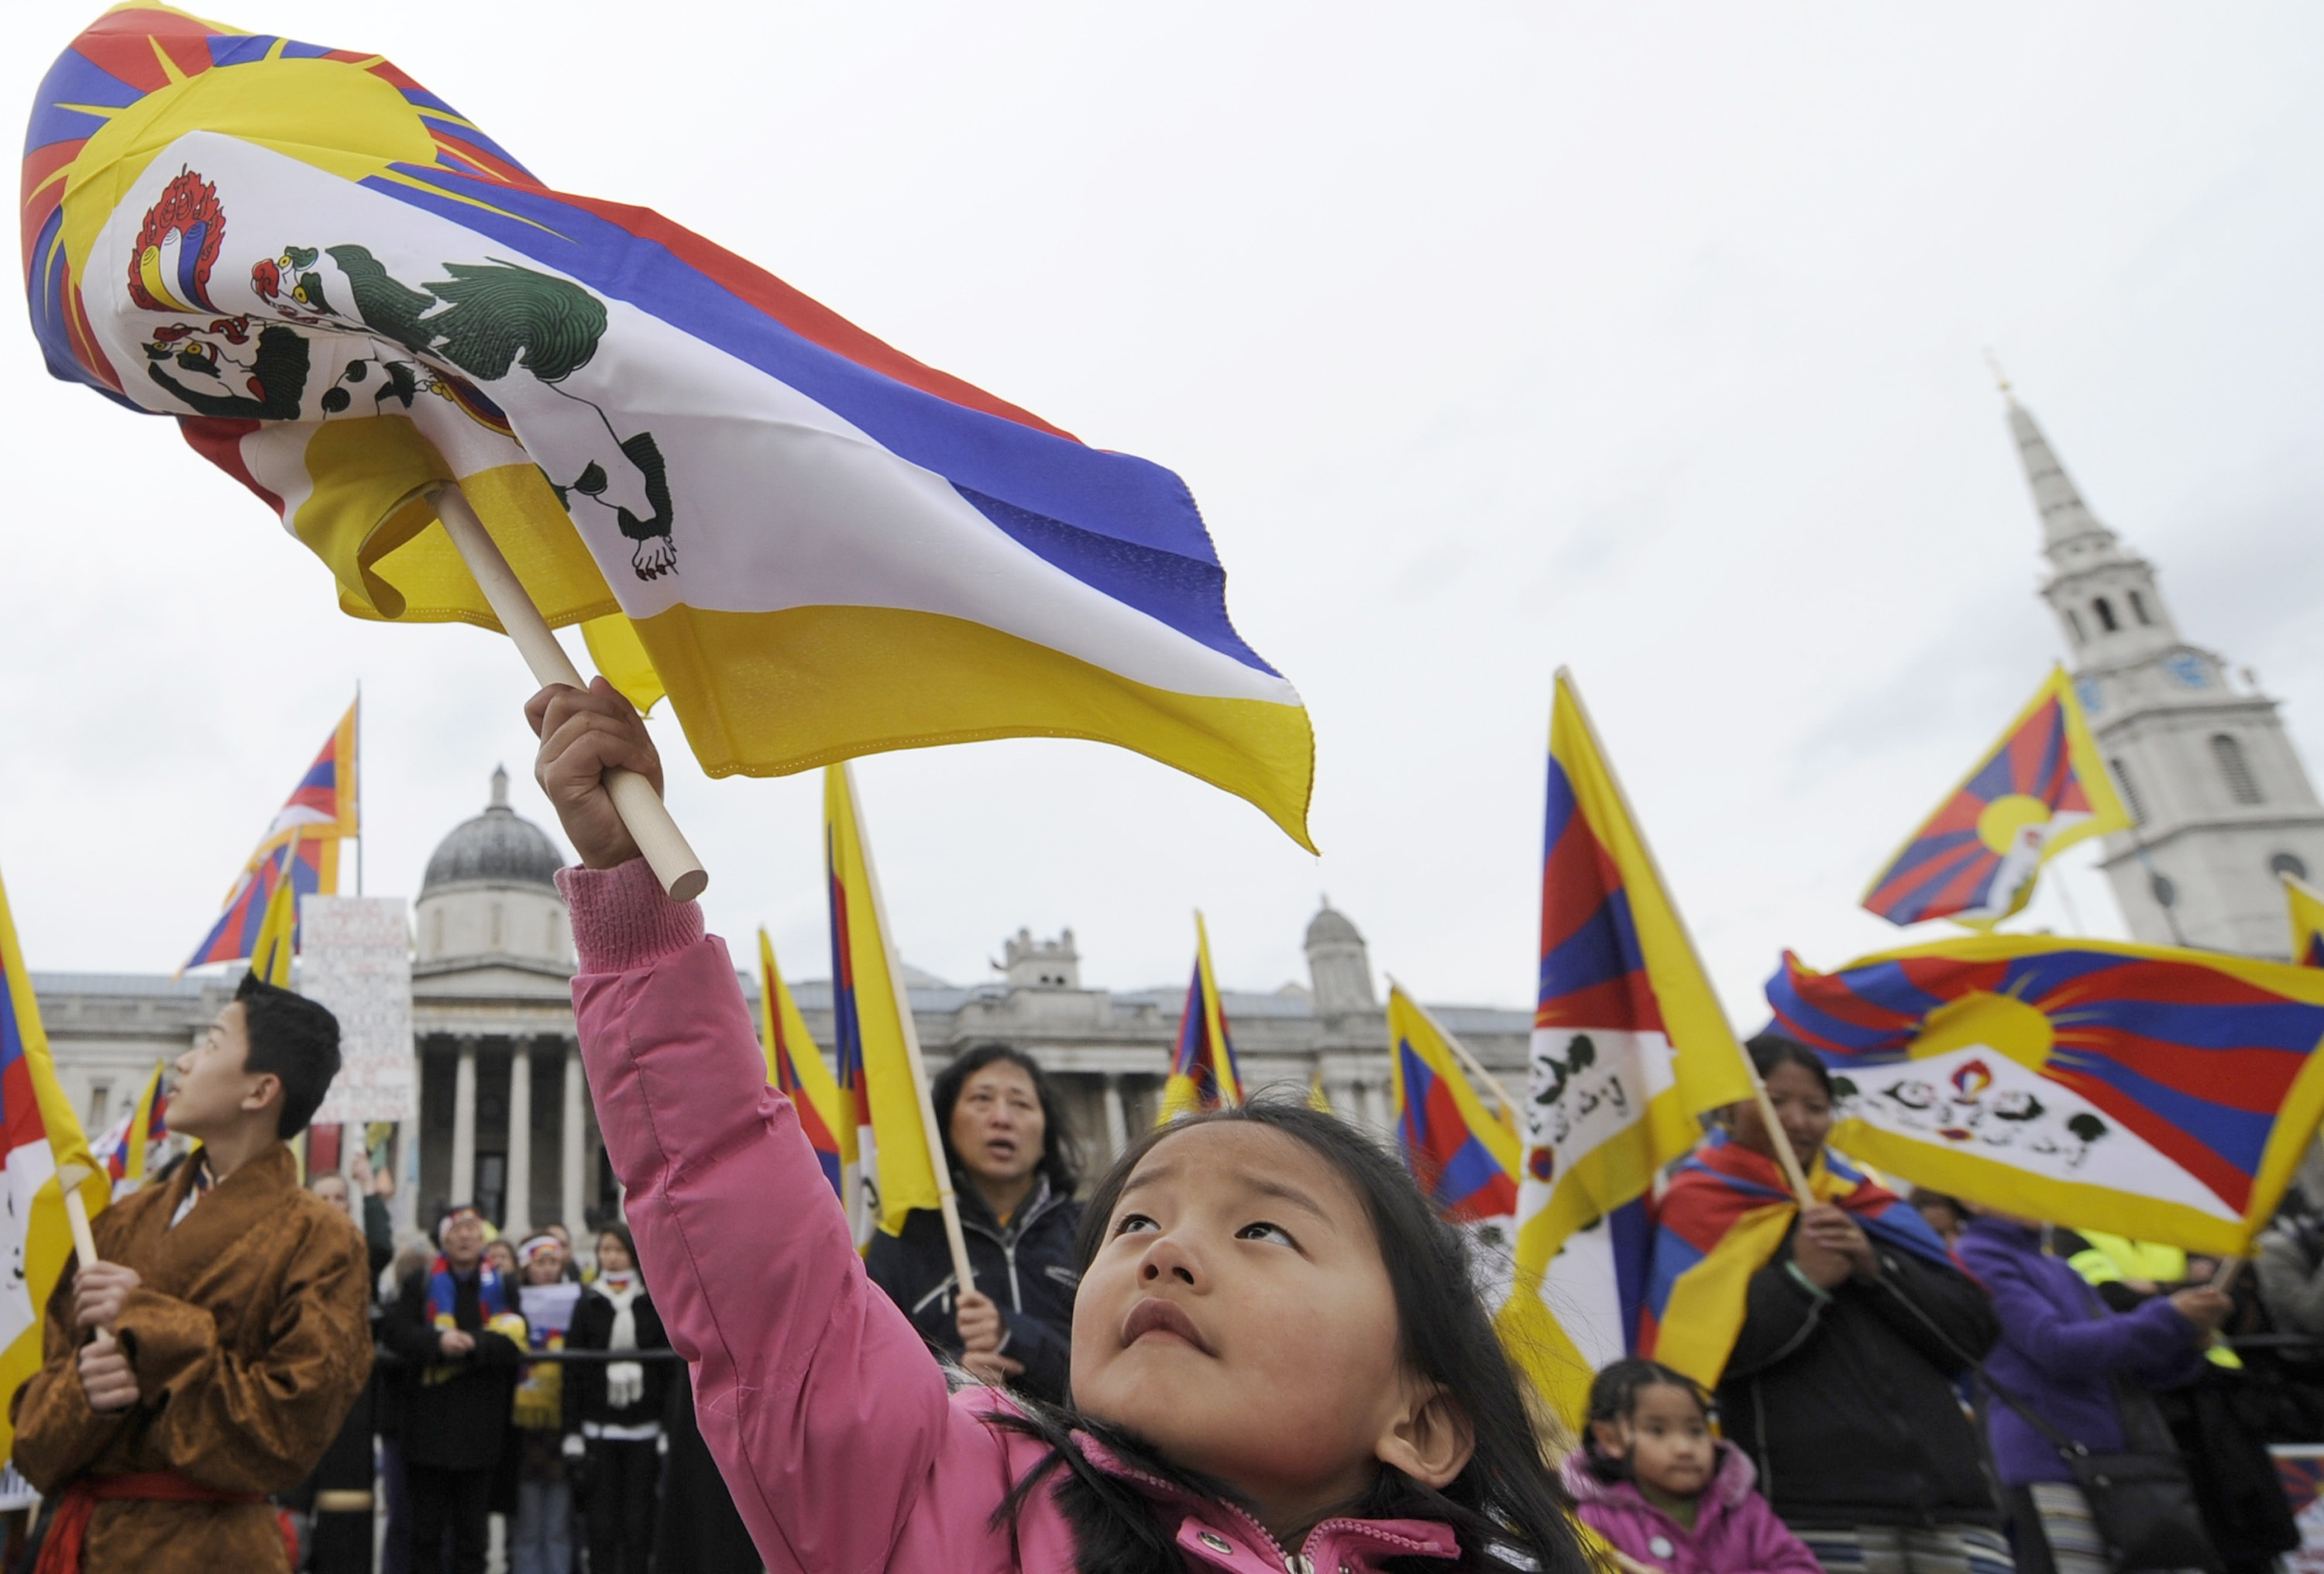 A young demonstrator waves a Tibetan flag during speeches at a pro-Tibetan march and rally in Trafalgar Square in central London, England on Saturday.